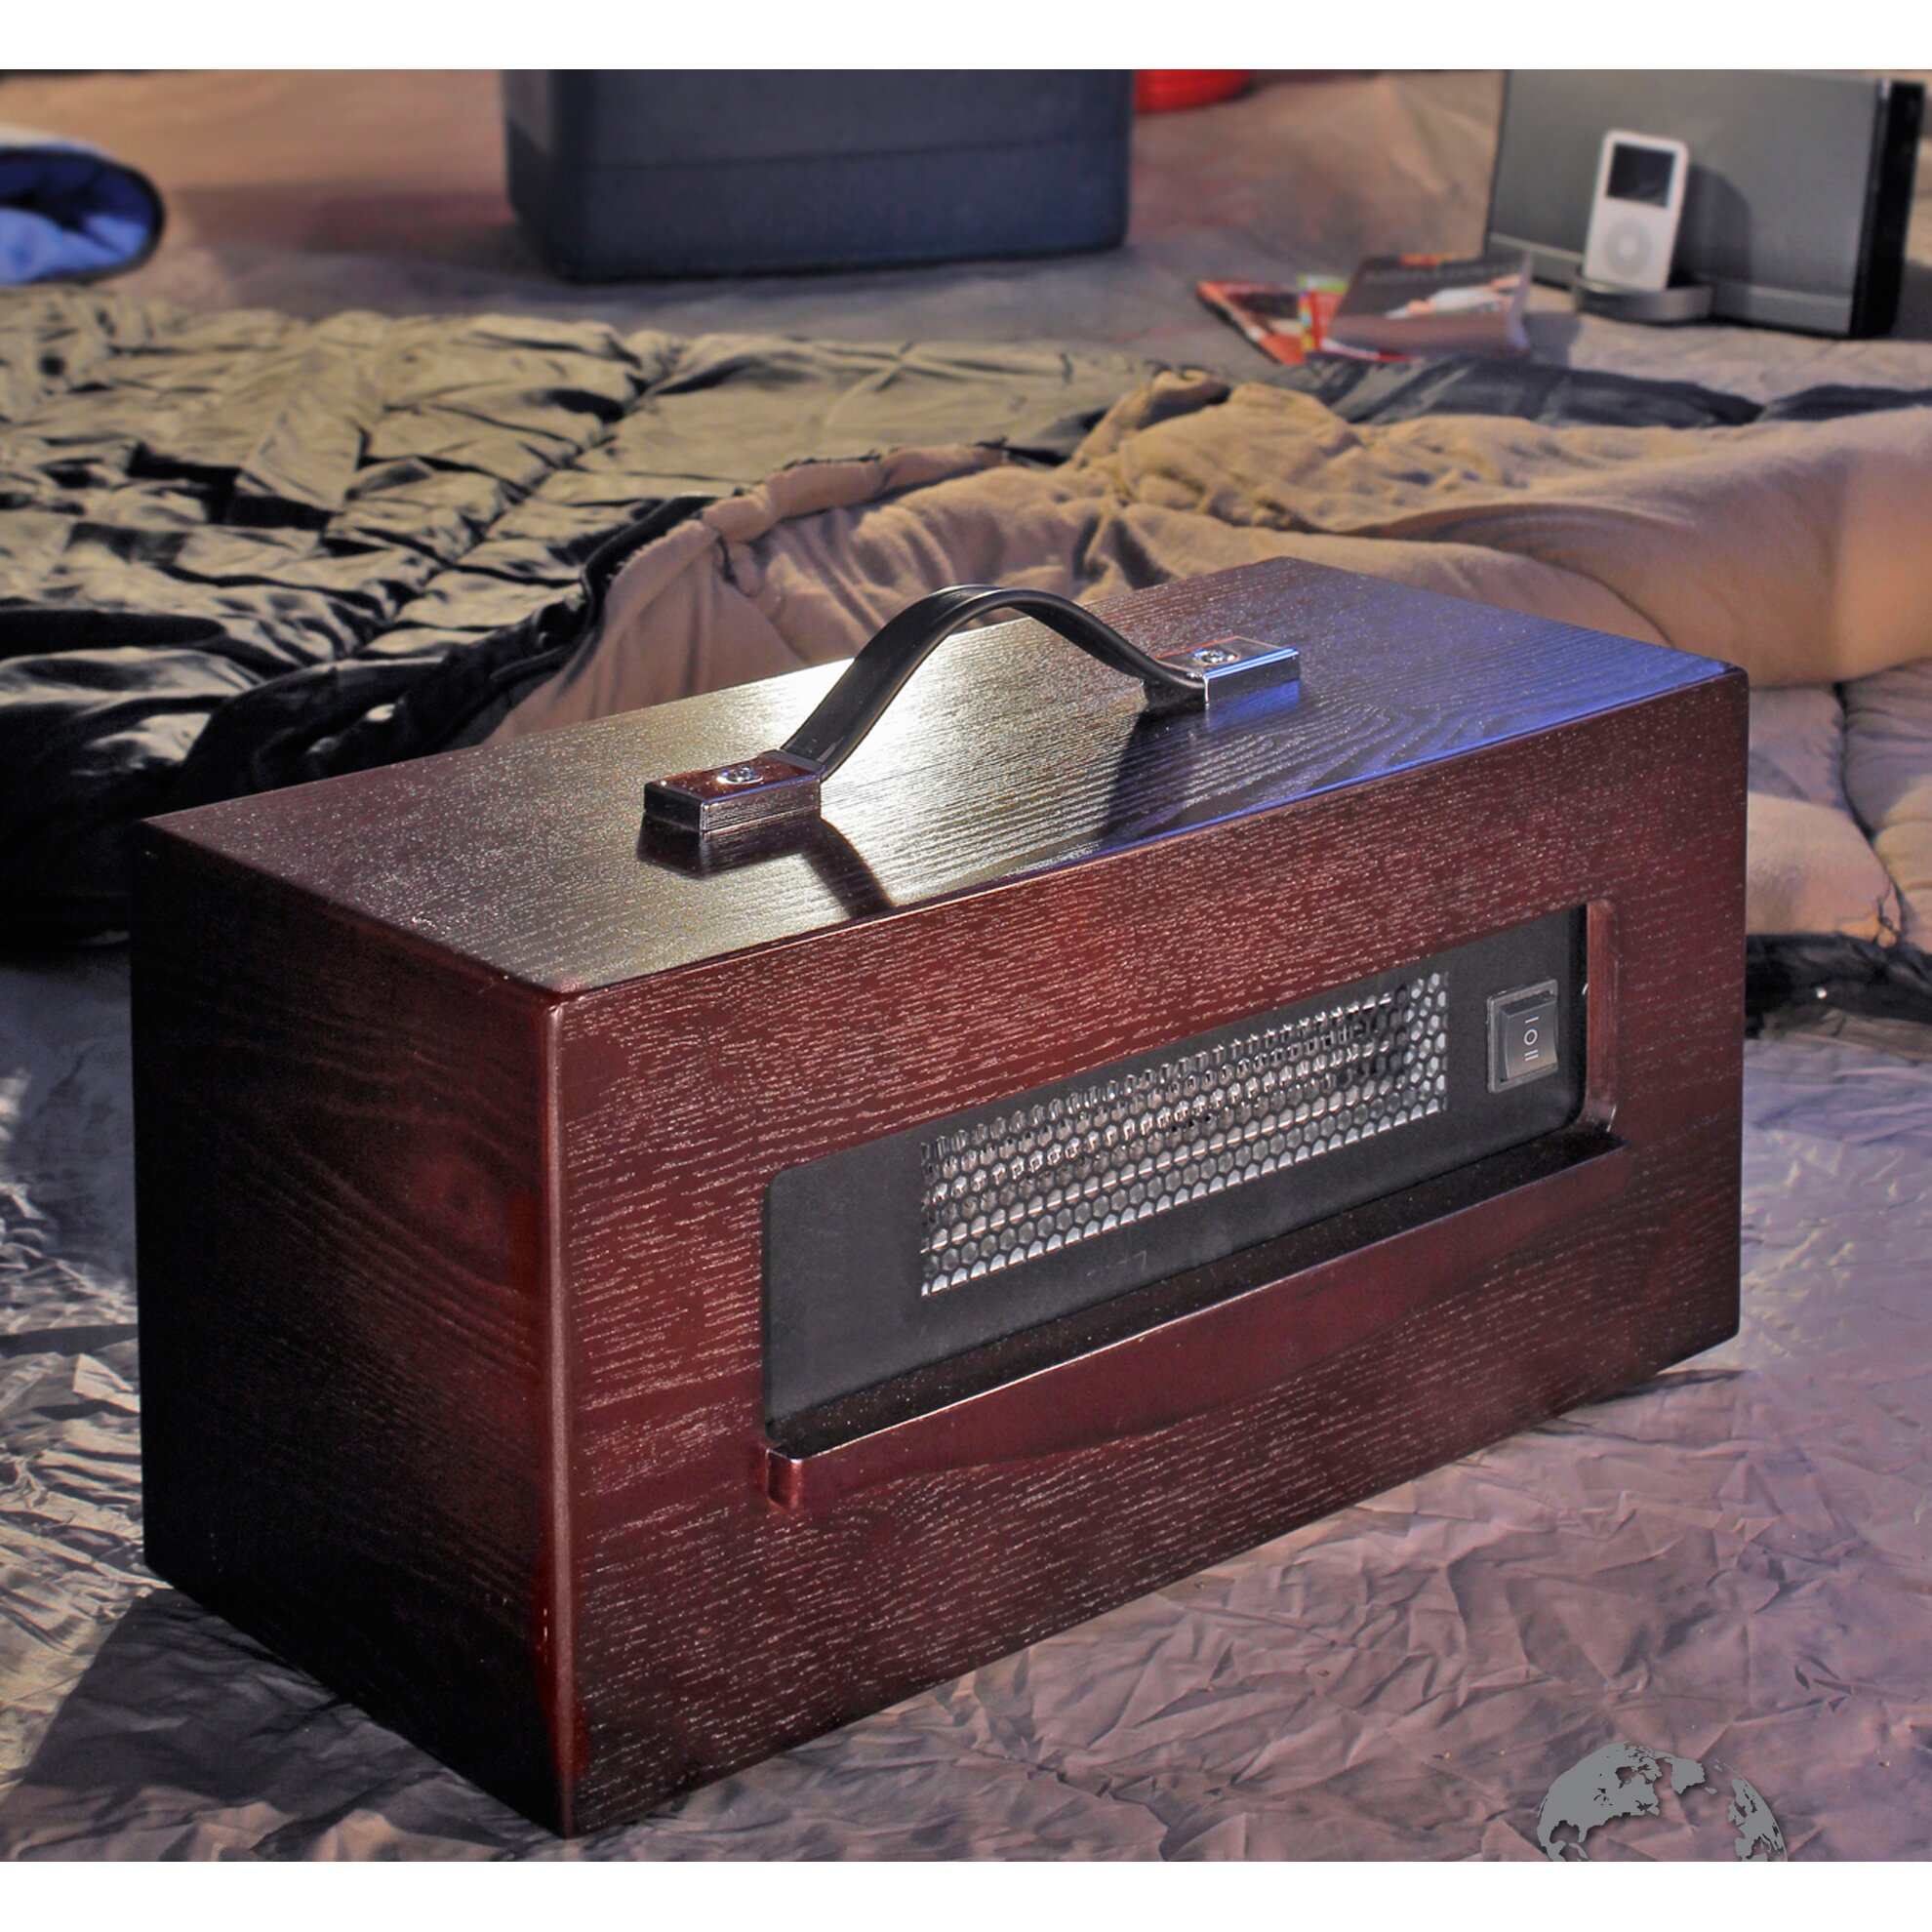 Infrared Dynamic 1,500 Watt Portable Electric Infrared Cabinet Heater